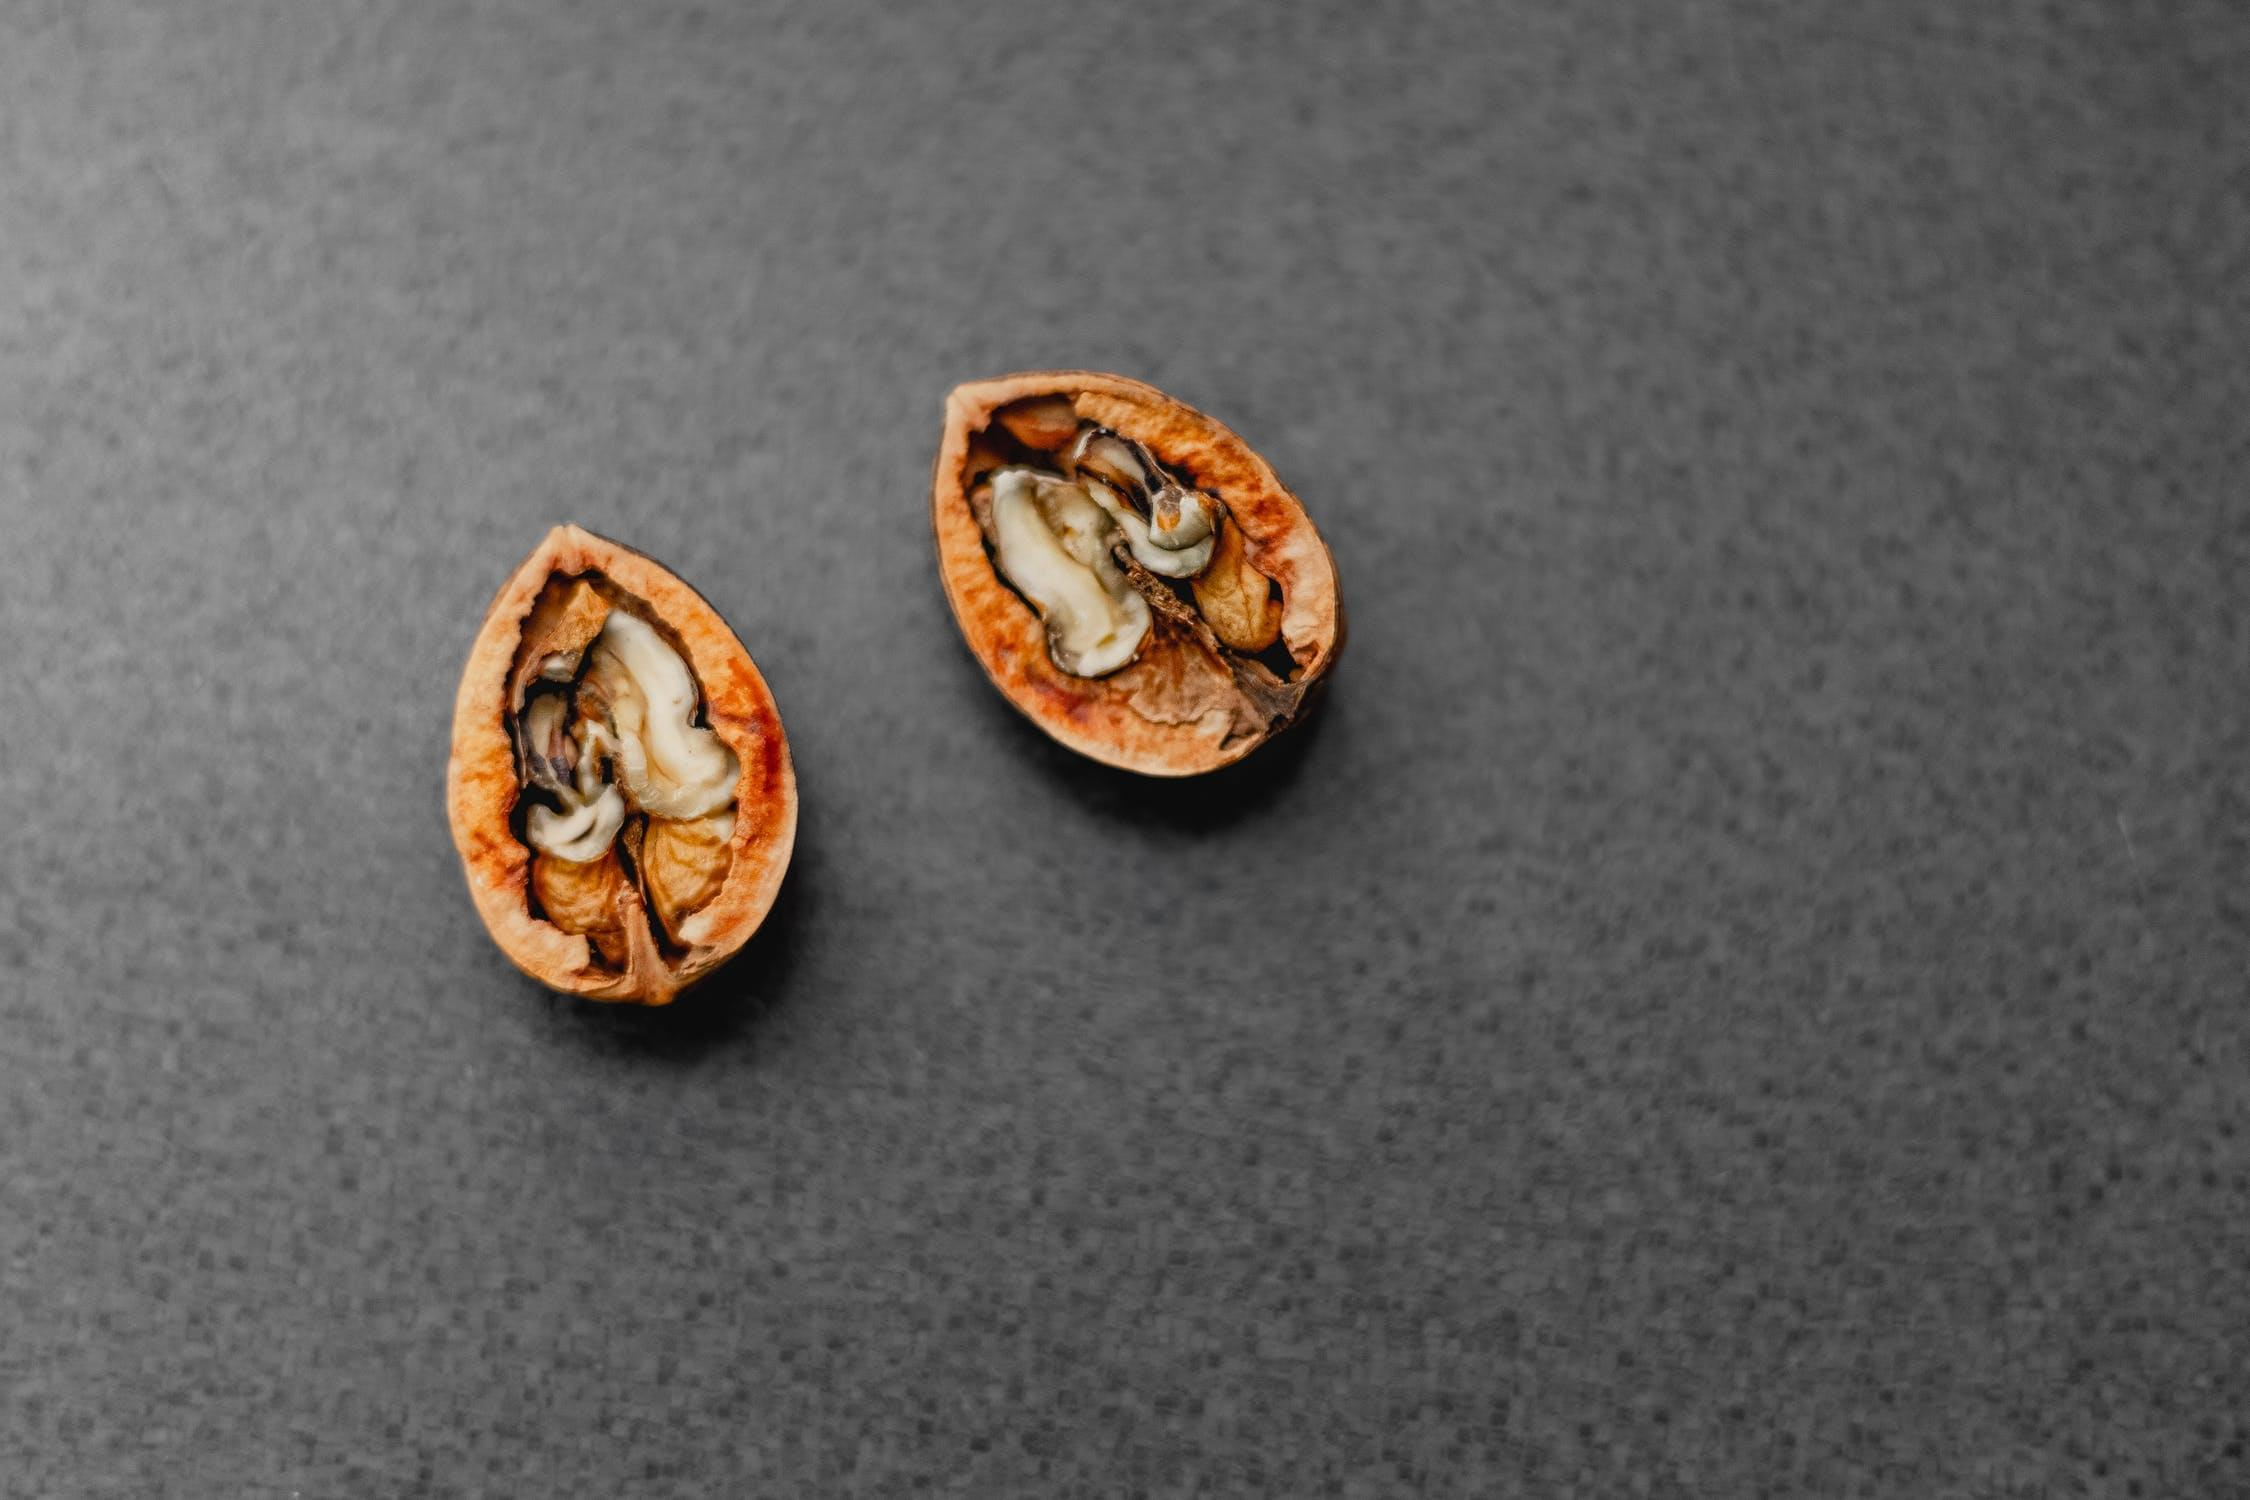 WATCH two guys compete for the World Record for most walnuts cracked with their head under a minute